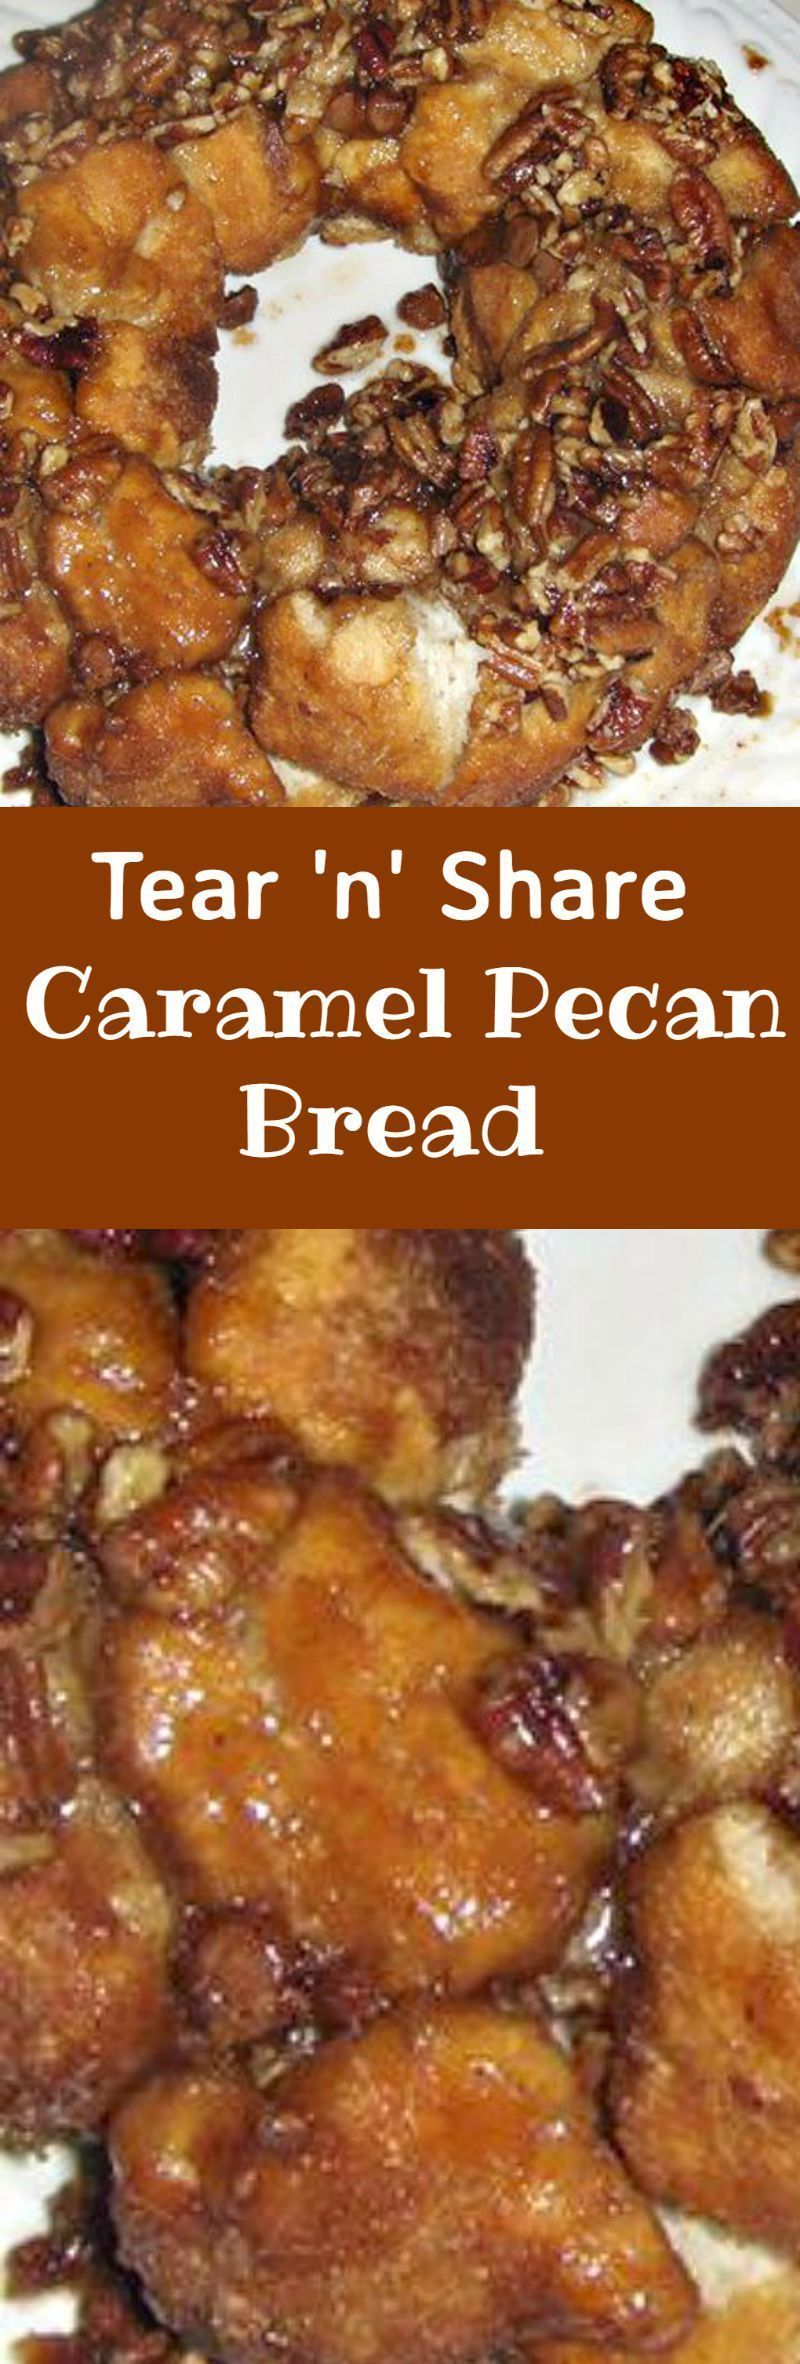 Tear n Share Caramel Pecan Bread. Sticky buns taken to another level! Check out what's in these! Really easy no fuss recipe, bake in a bundt then simply tear n share with your friends! #tearandsharebread Tear n Share Caramel Pecan Bread. Sticky buns taken to another level! Check out what's in these! Really easy no fuss recipe, bake in a bundt then simply tear n share with your friends! #tearandsharebread Tear n Share Caramel Pecan Bread. Sticky buns taken to another level! Check out what's in th #tearandsharebread